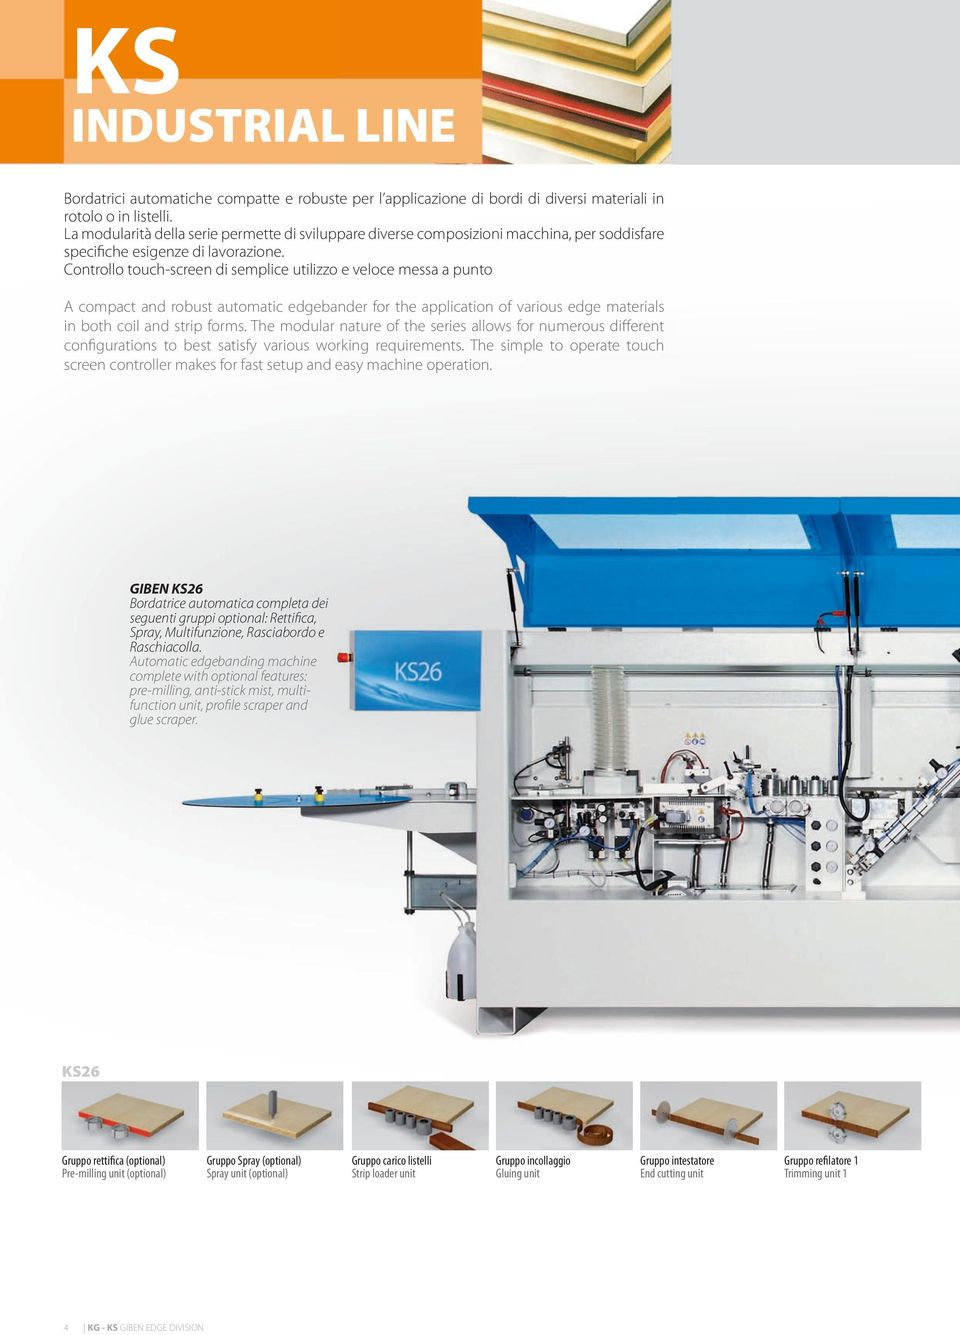 Controllo touch-screen di semplice utilizzo e veloce messa a punto A compact and robust automatic edgebander for the application of various edge materials in both coil and strip forms.